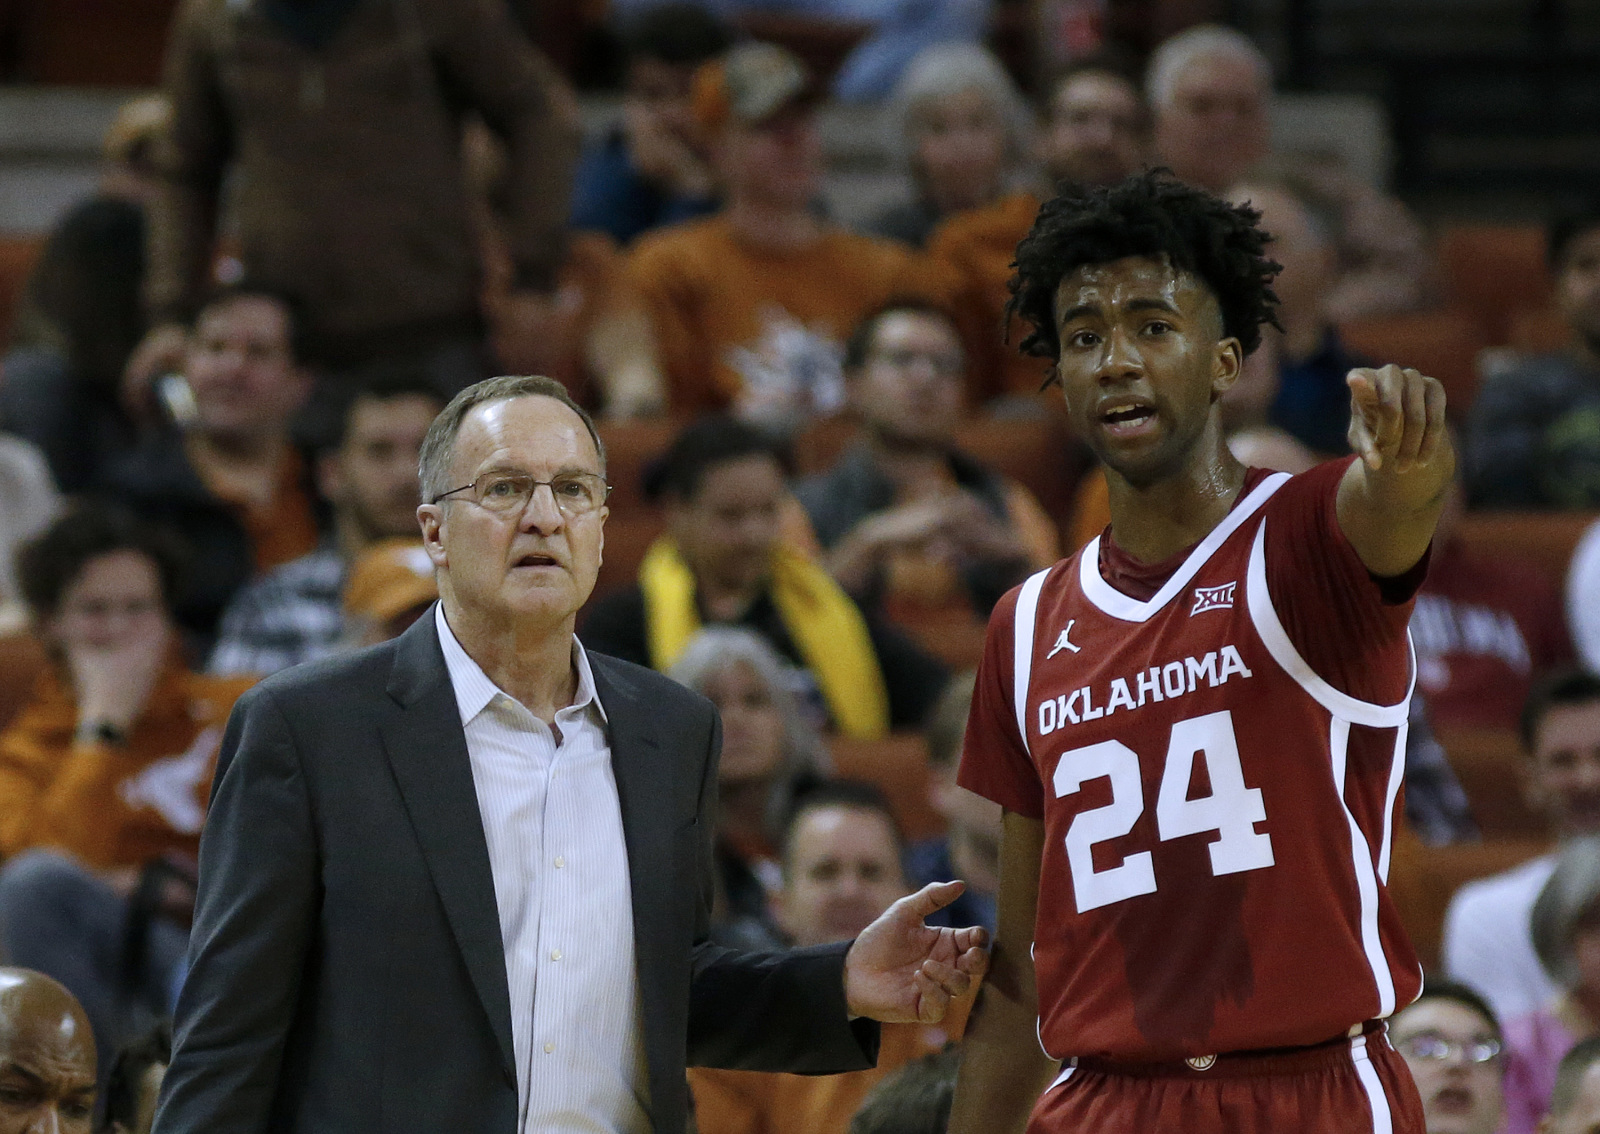 Big 12 Bracketology: Who's in, who's out? – Oklahoma squarely on the bubble